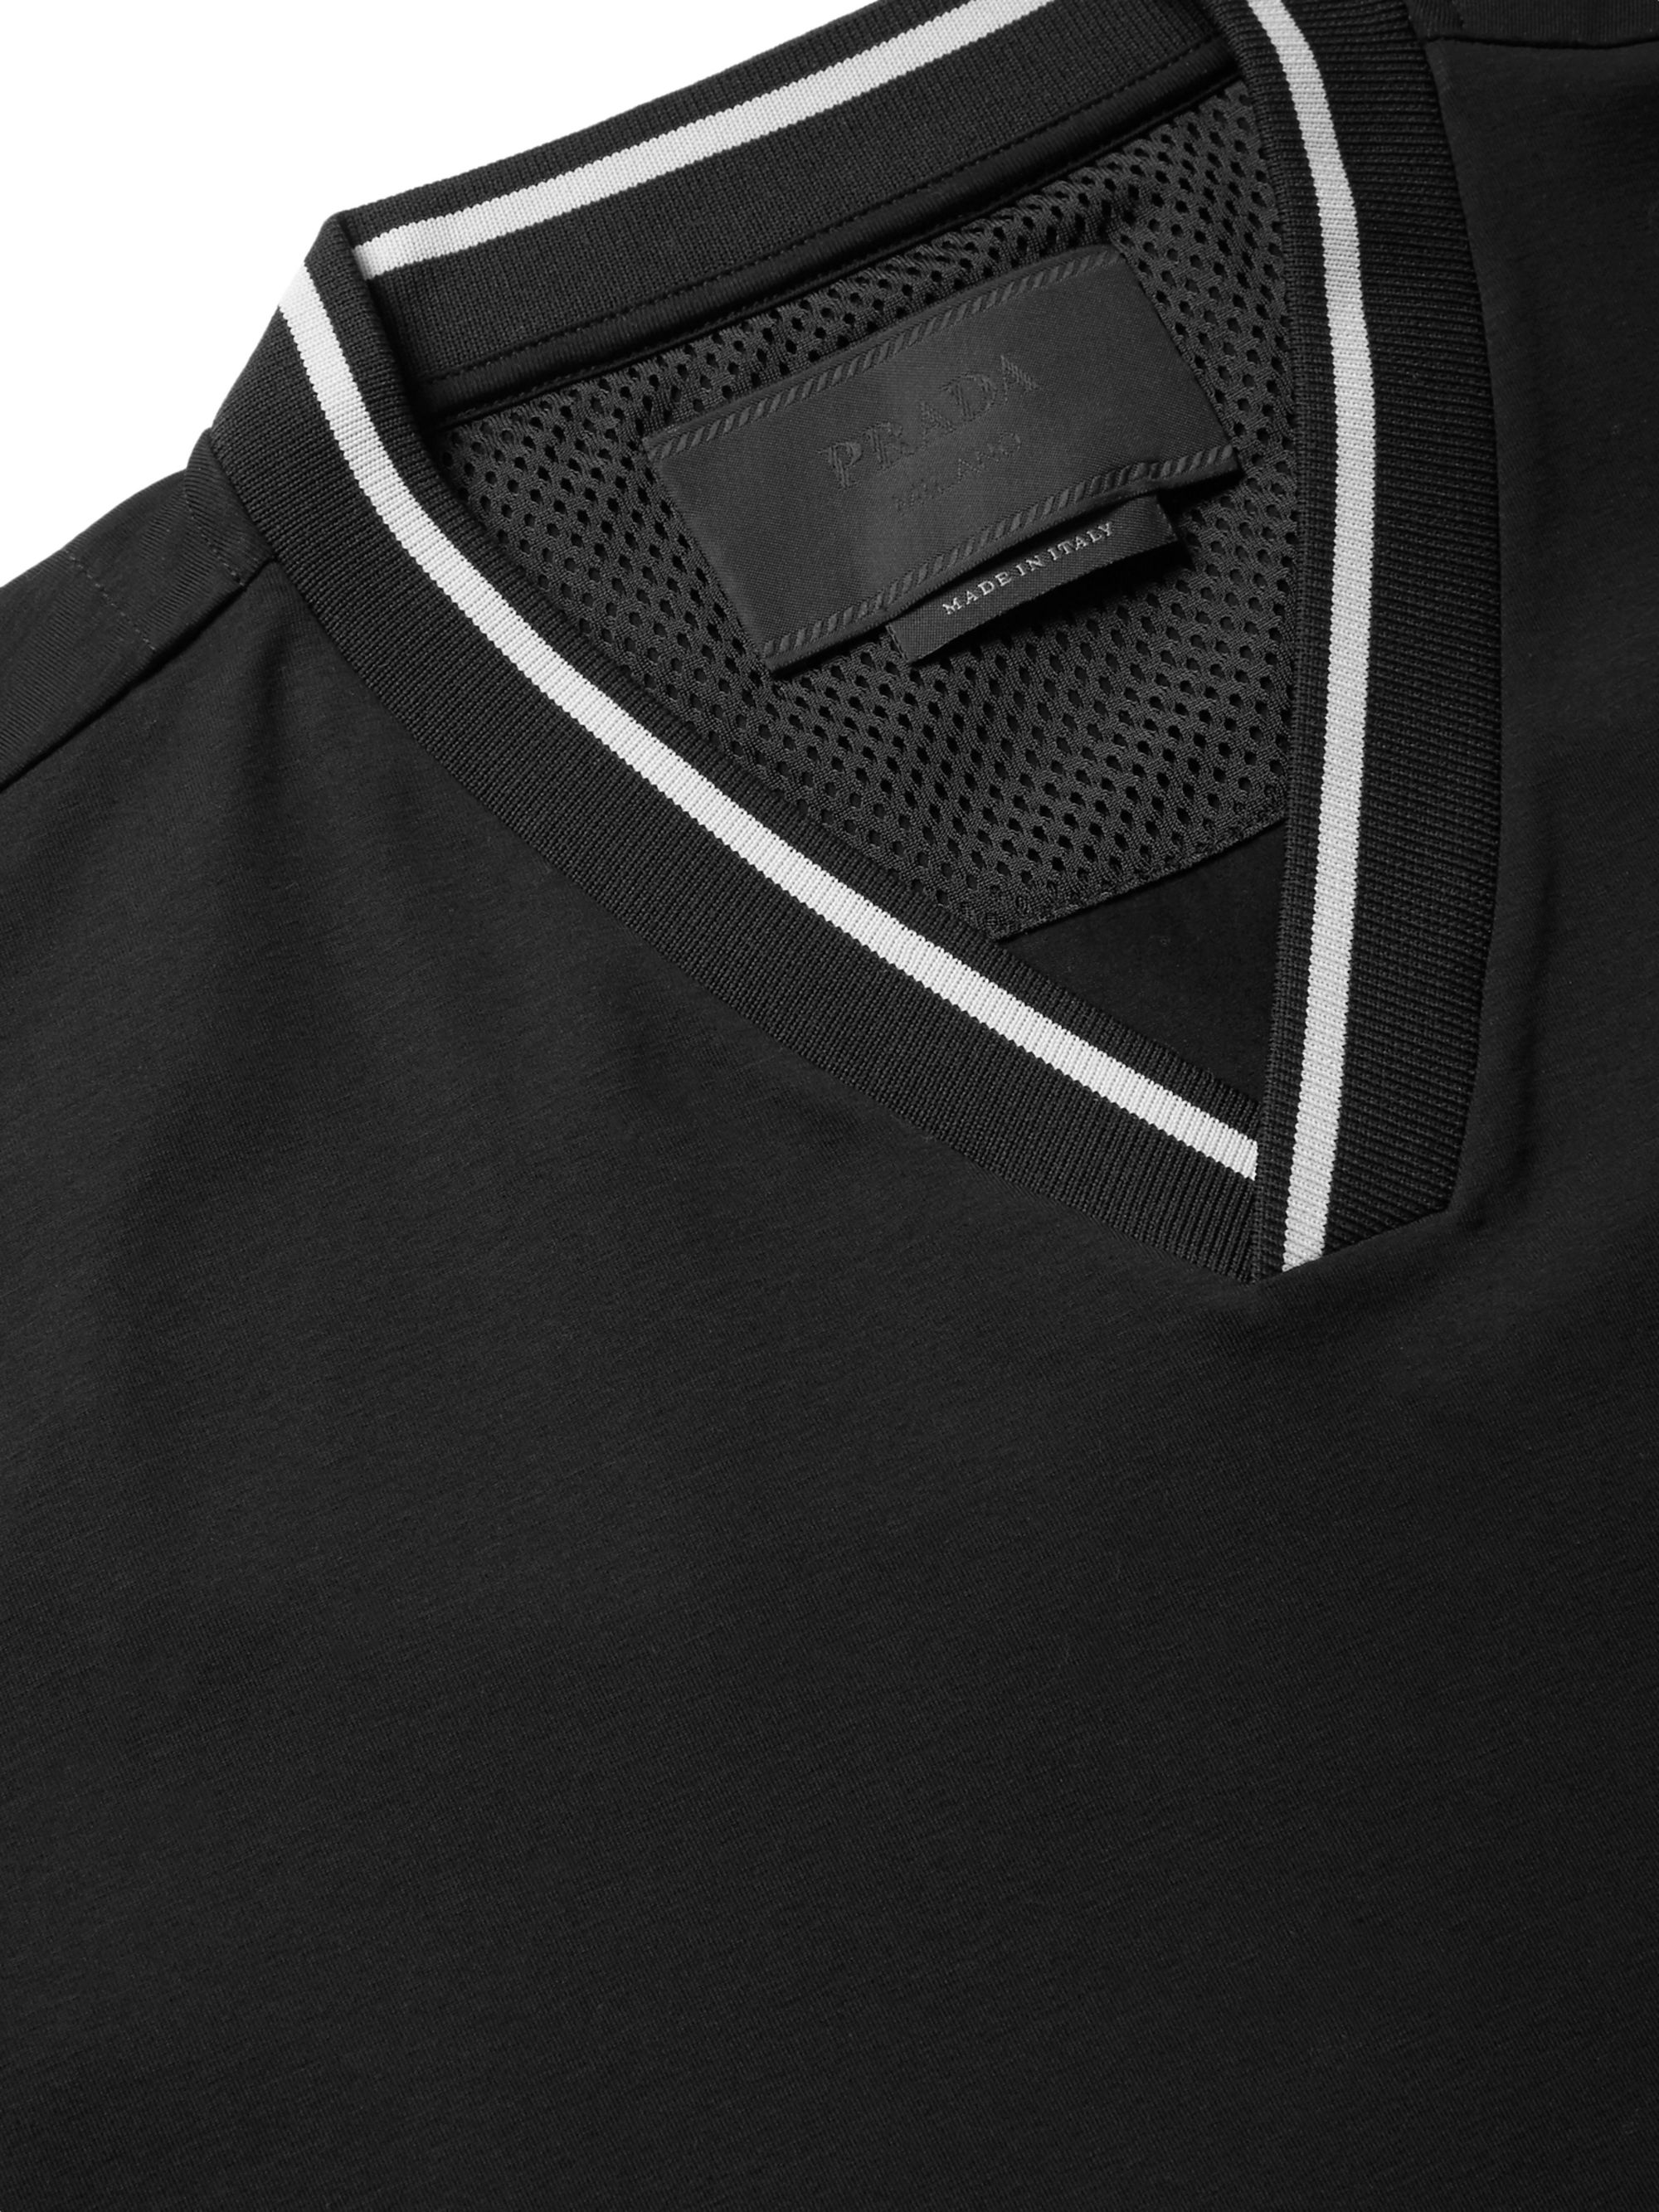 Prada Webbing-Trimmed Stretch-Cotton Jersey T-Shirt